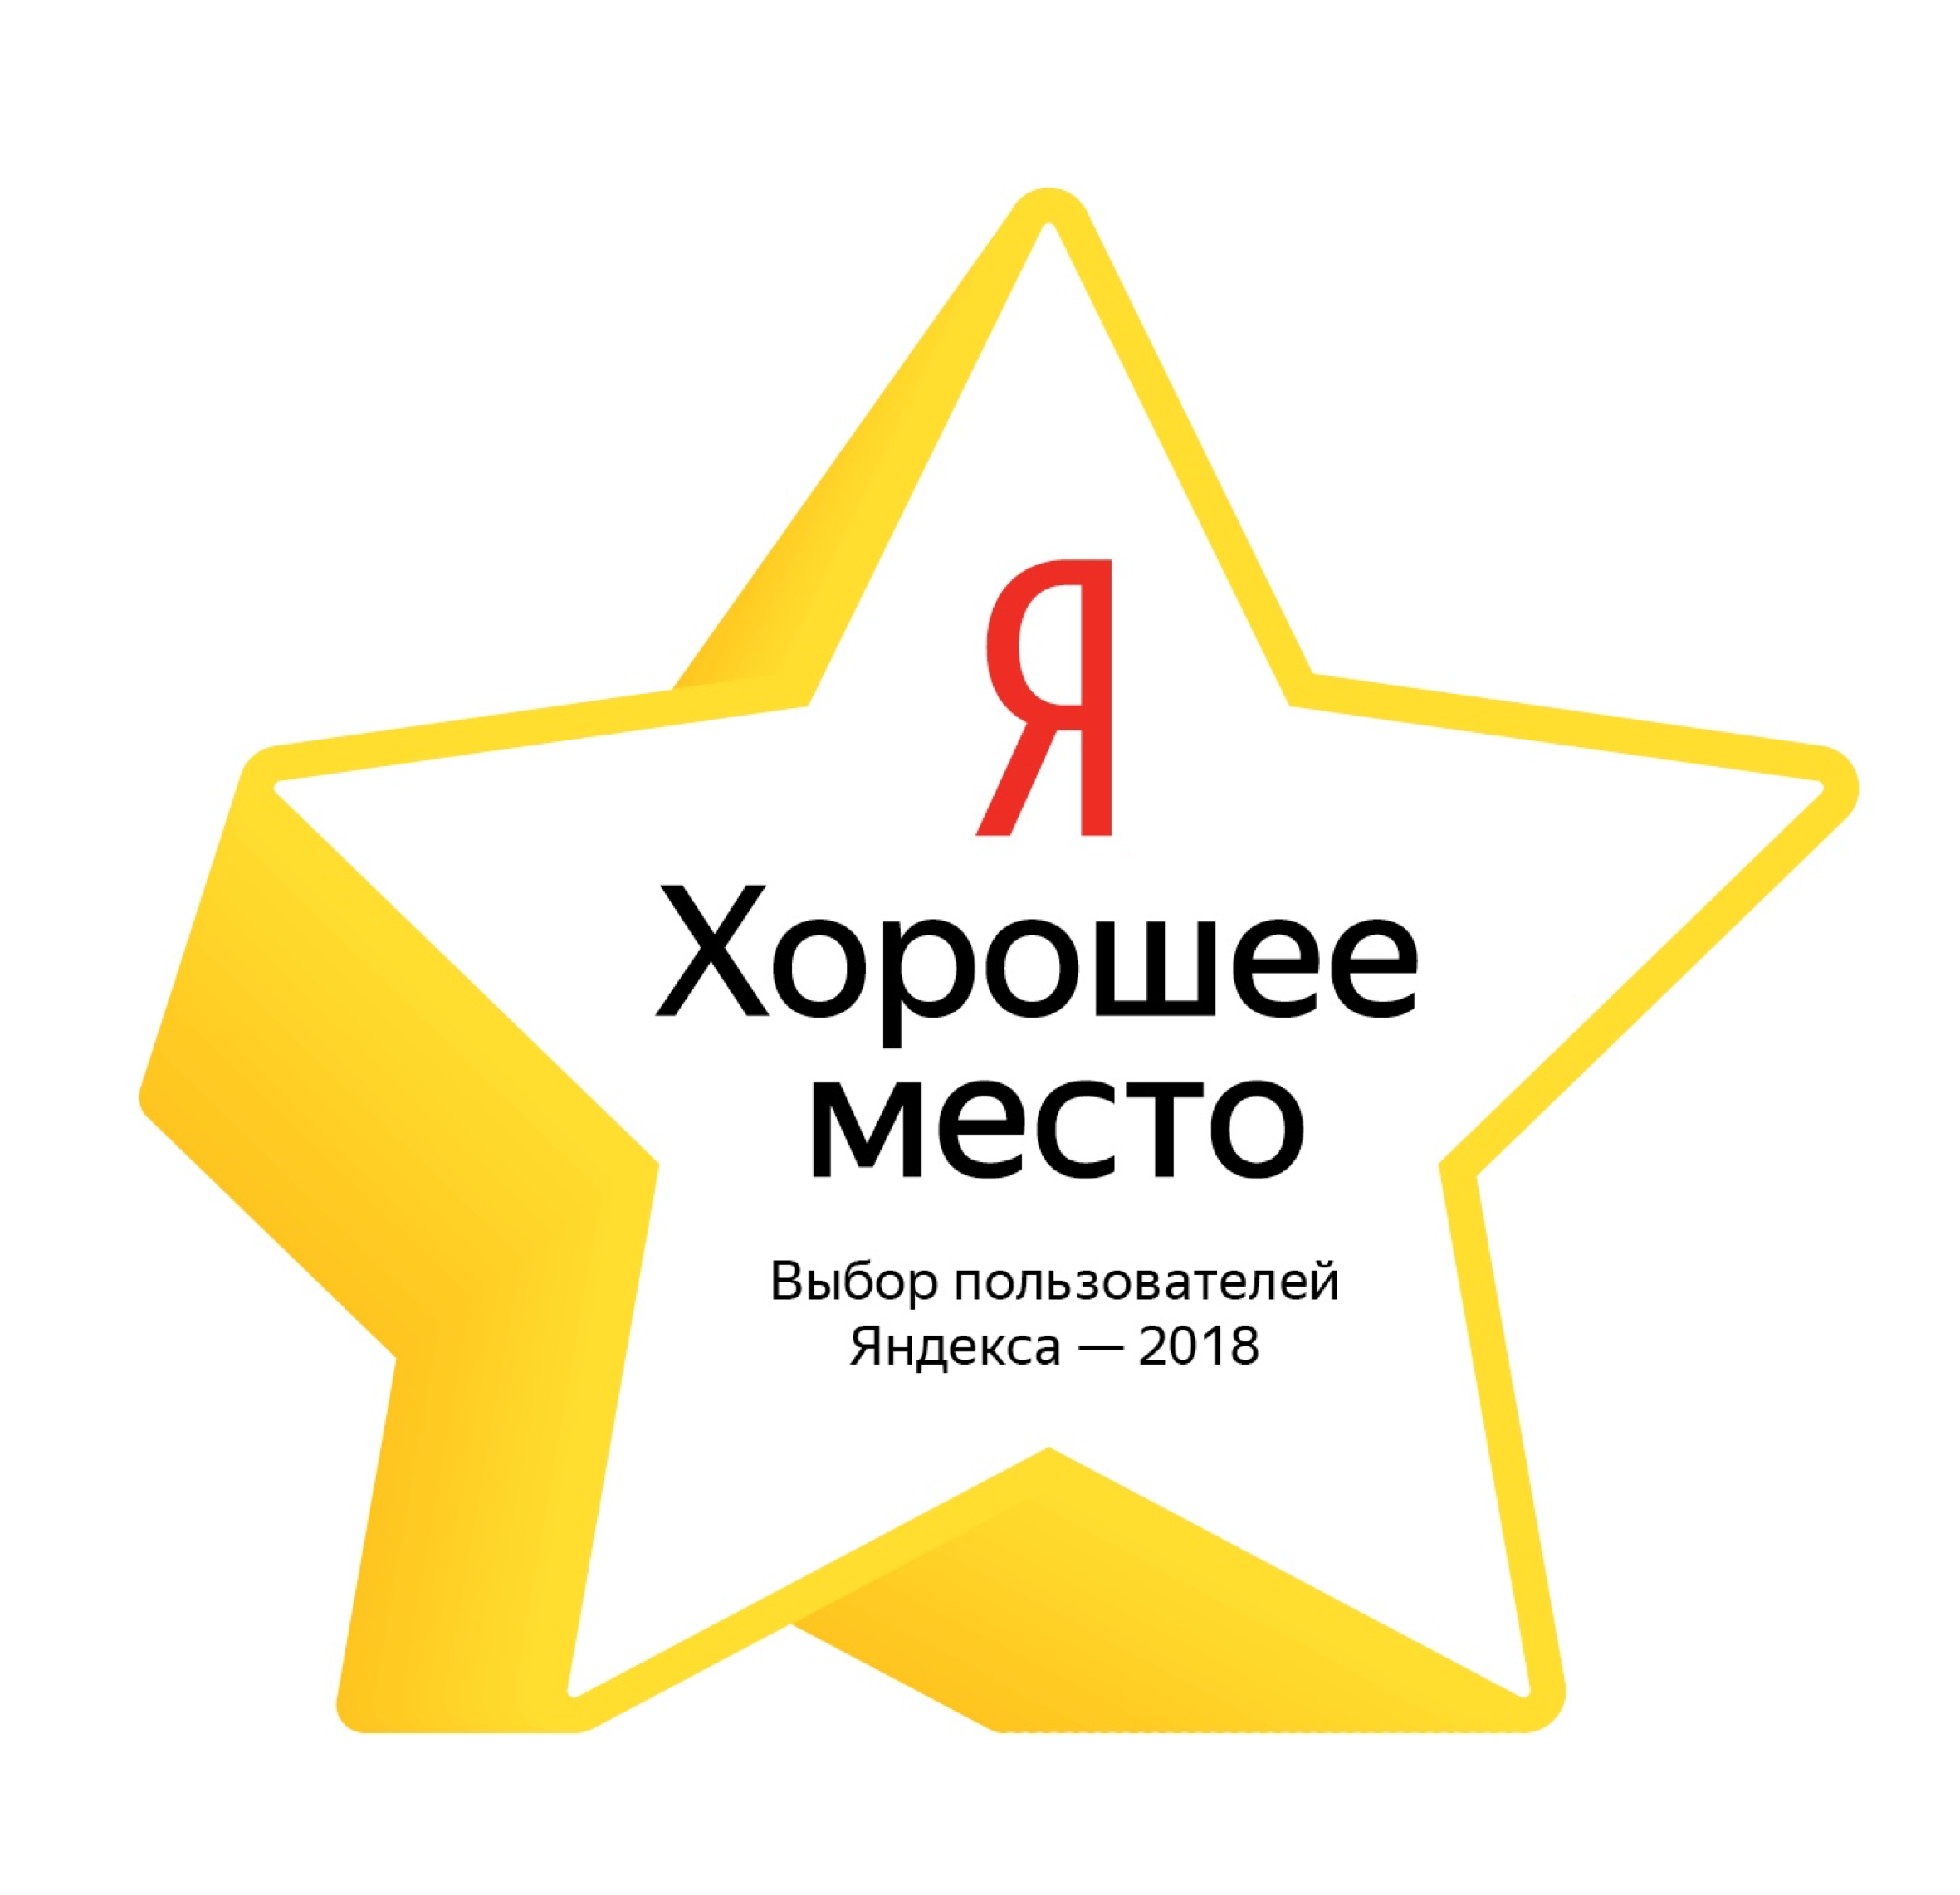 https://avatars.mds.yandex.net/get-yablogs/61002/file_1544706789279/orig